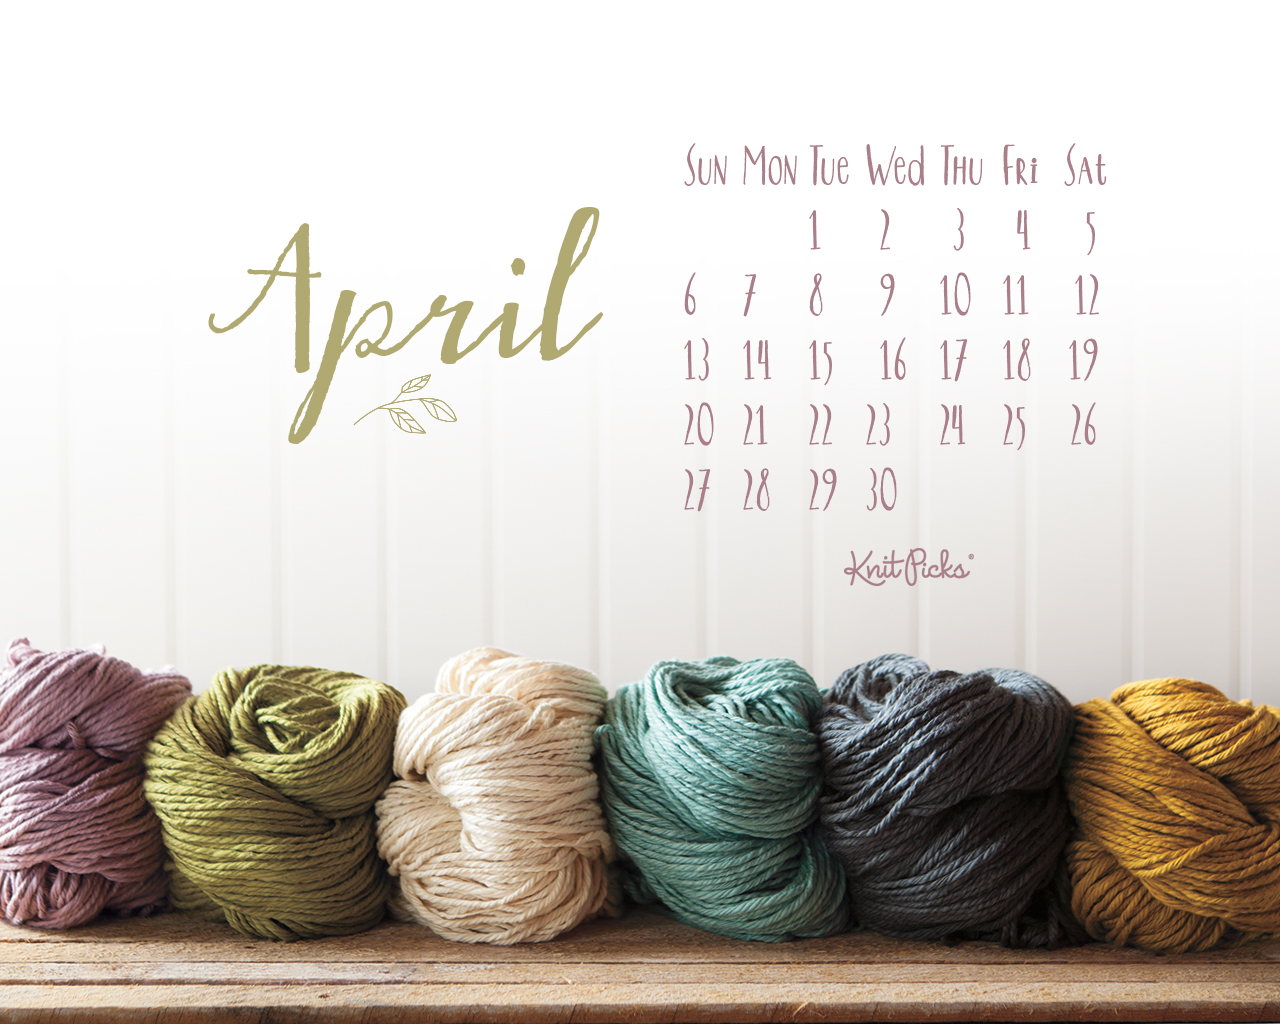 Knitting Wallpaper Free : Free download april desktop calendar by knit picks